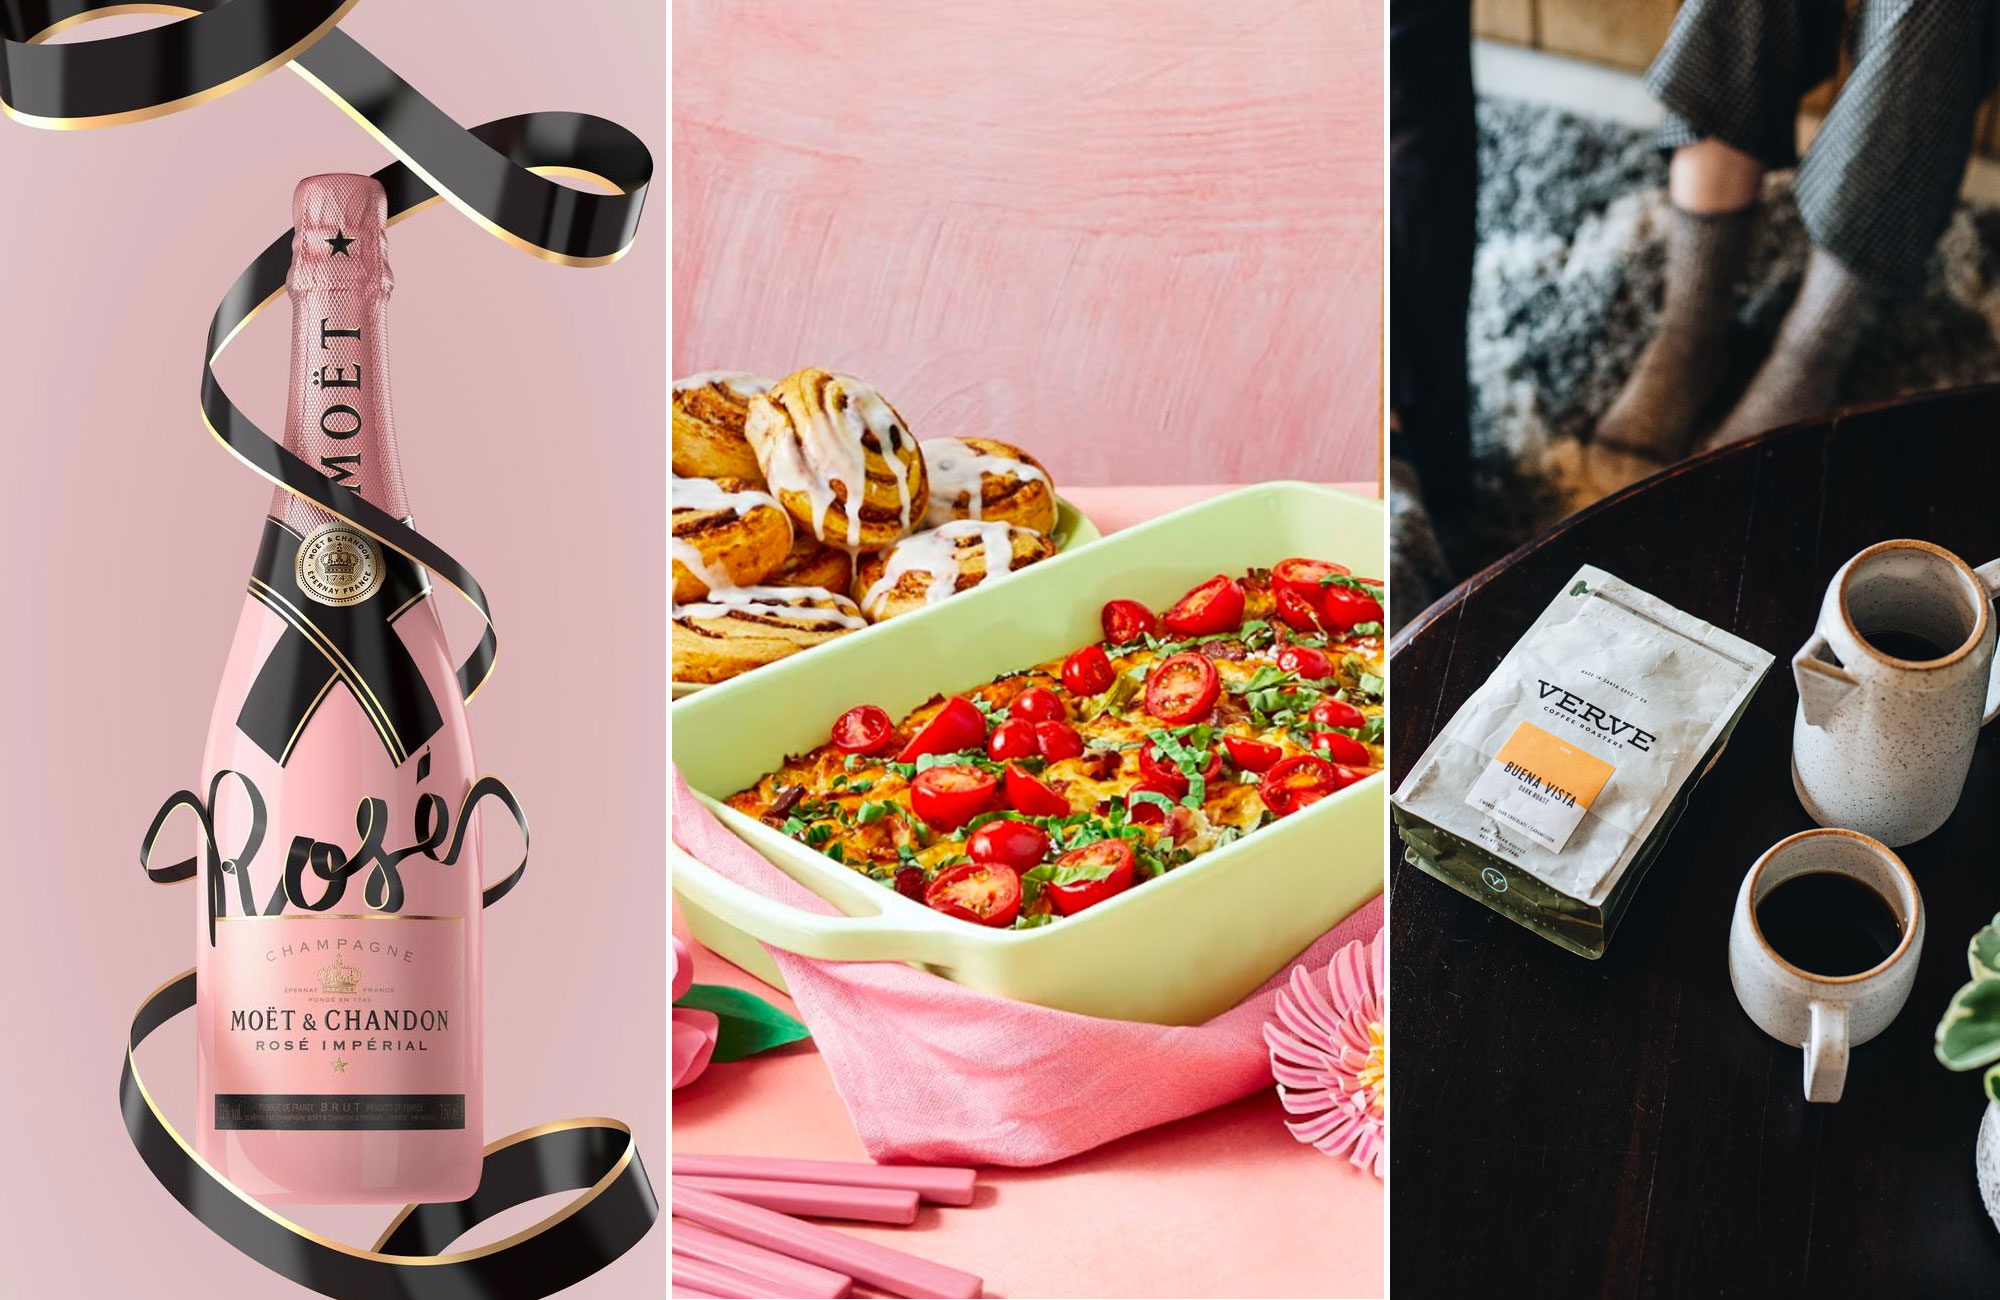 Moët & Chandon Rose Brunch Box Coffee Subscription BoxMother's Day Gifts for the Foodie in Your Life - Moët & Chandon Rose, Brunch Box, Coffee Subscription Box